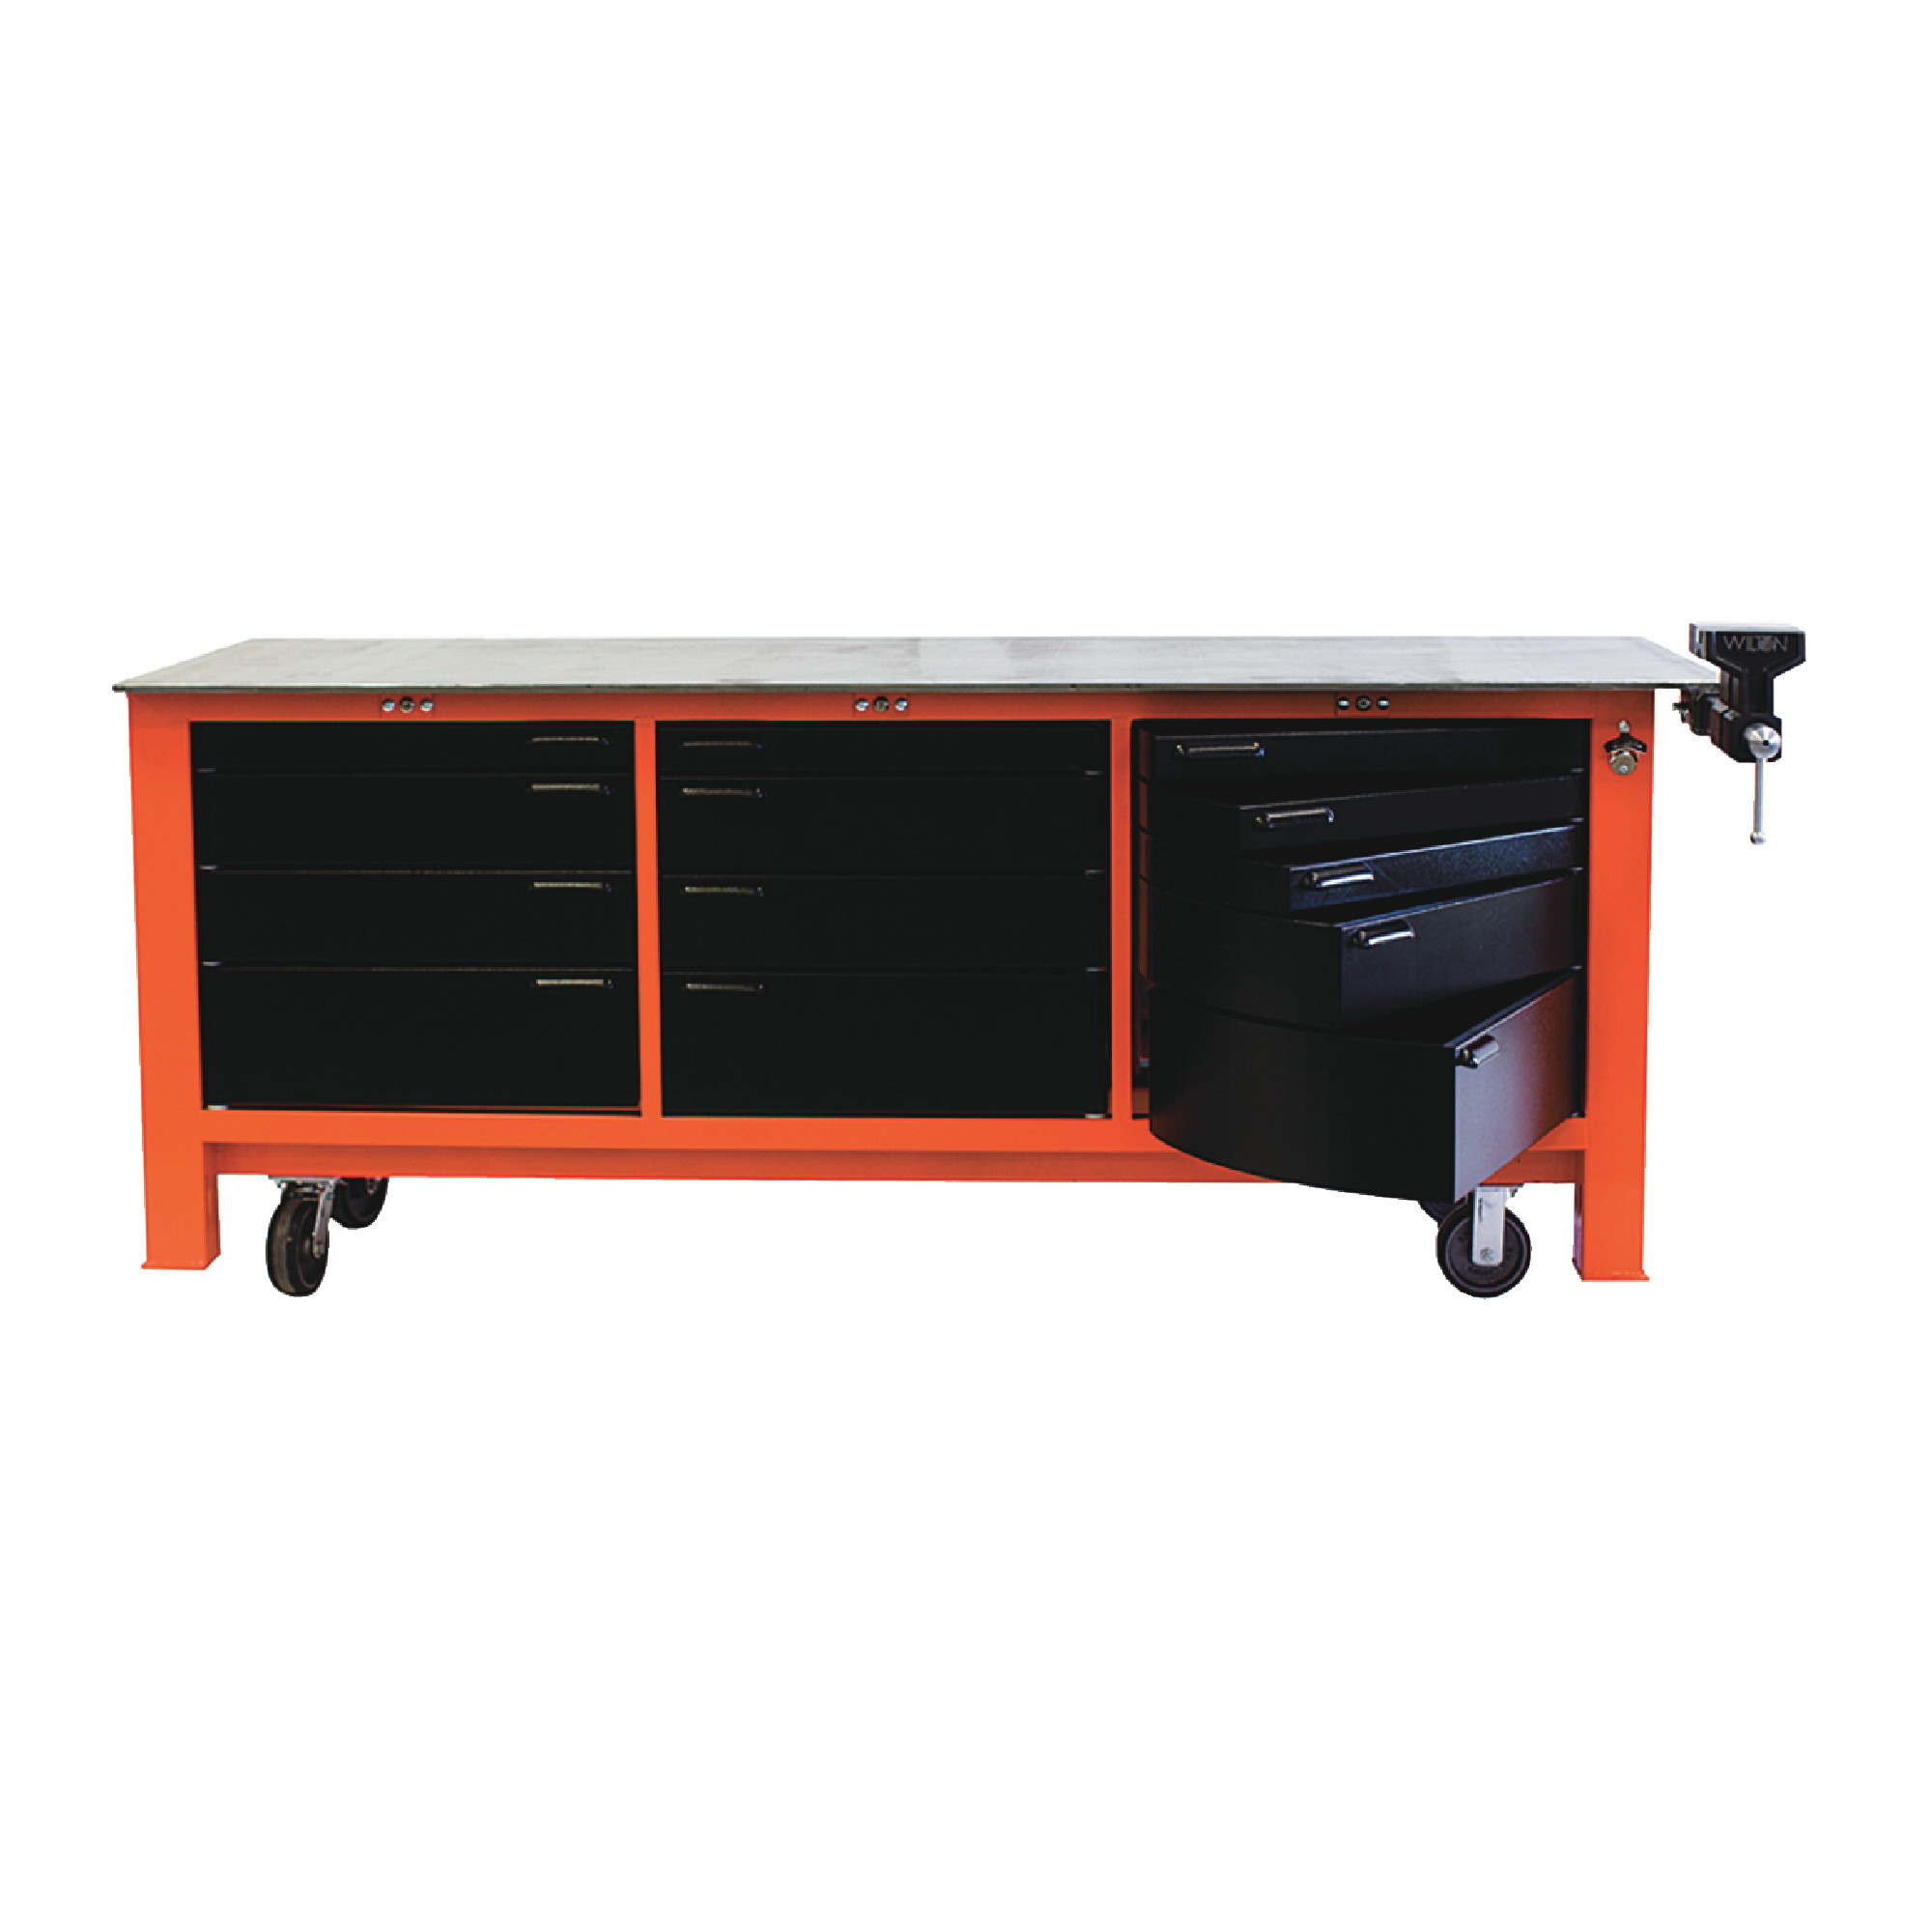 8' Long With Casters Three Full Banks Of Drawers